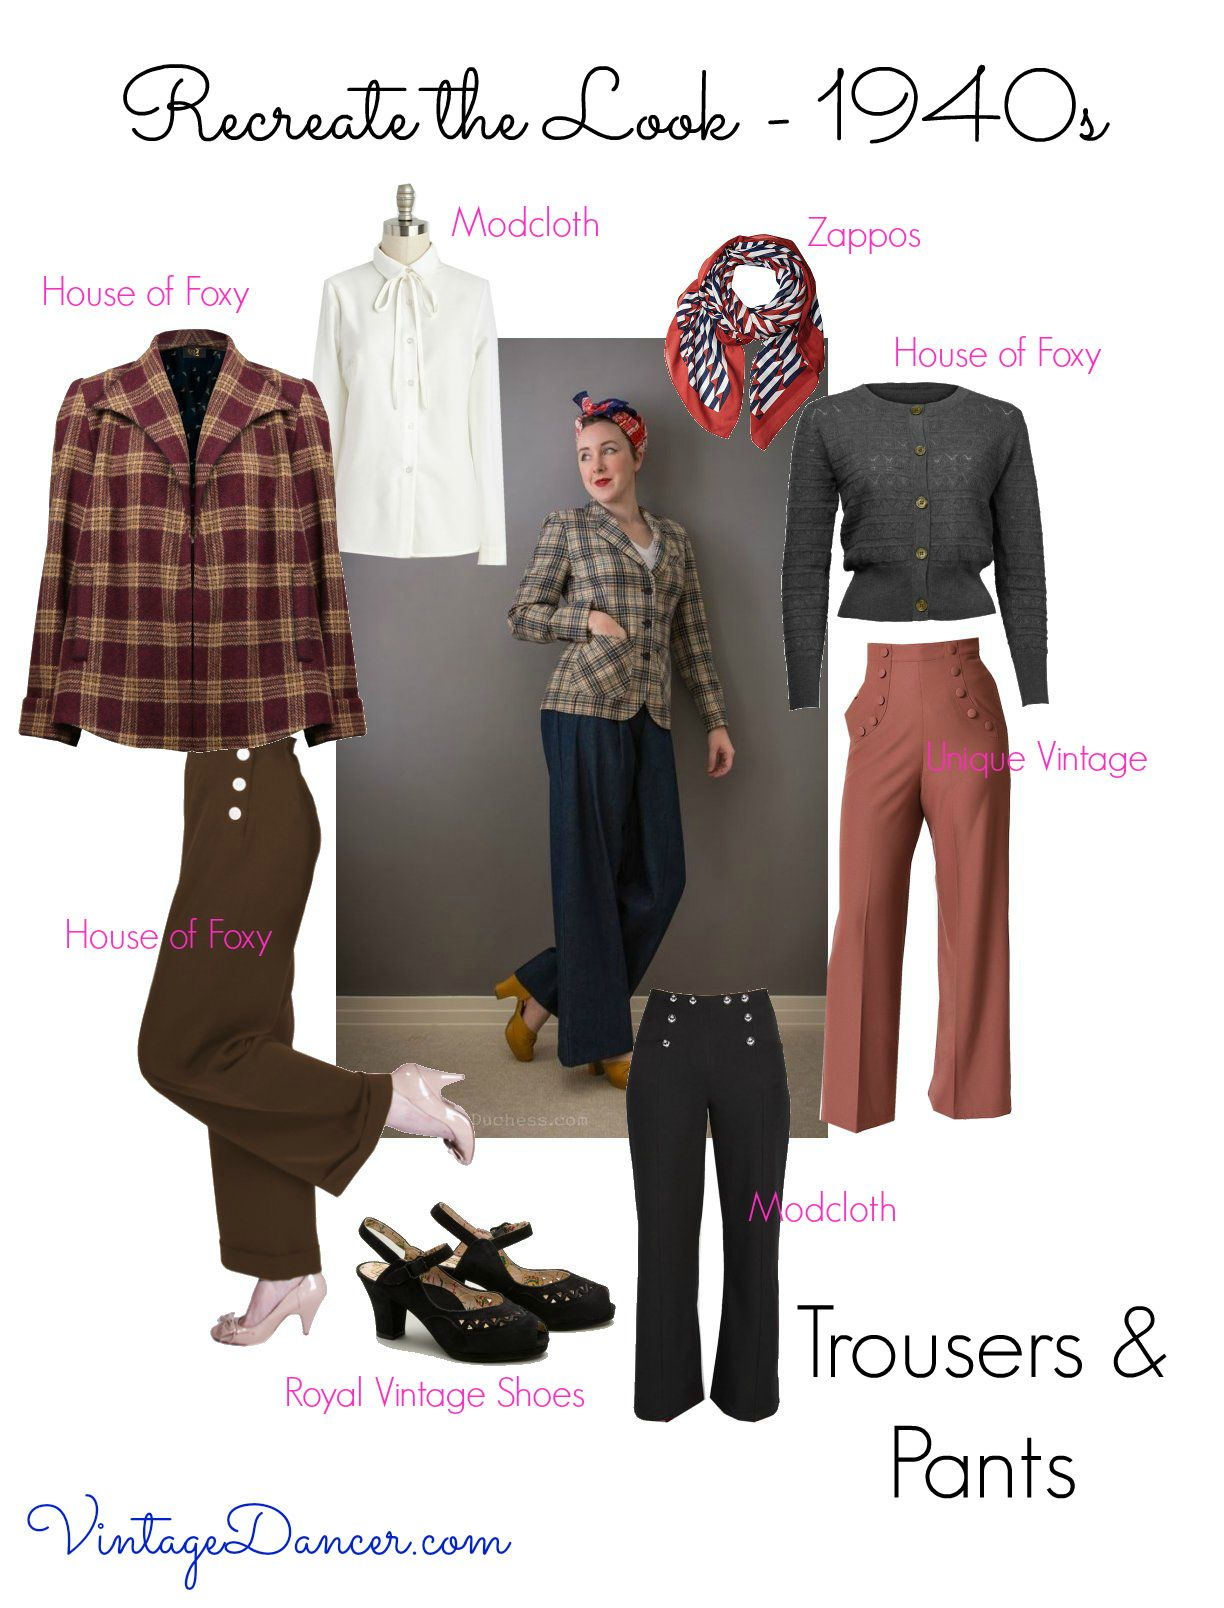 The Real And The Inspired By 1940s Fashion: 1940s Outfit Ideas: Recreate The 40s Look